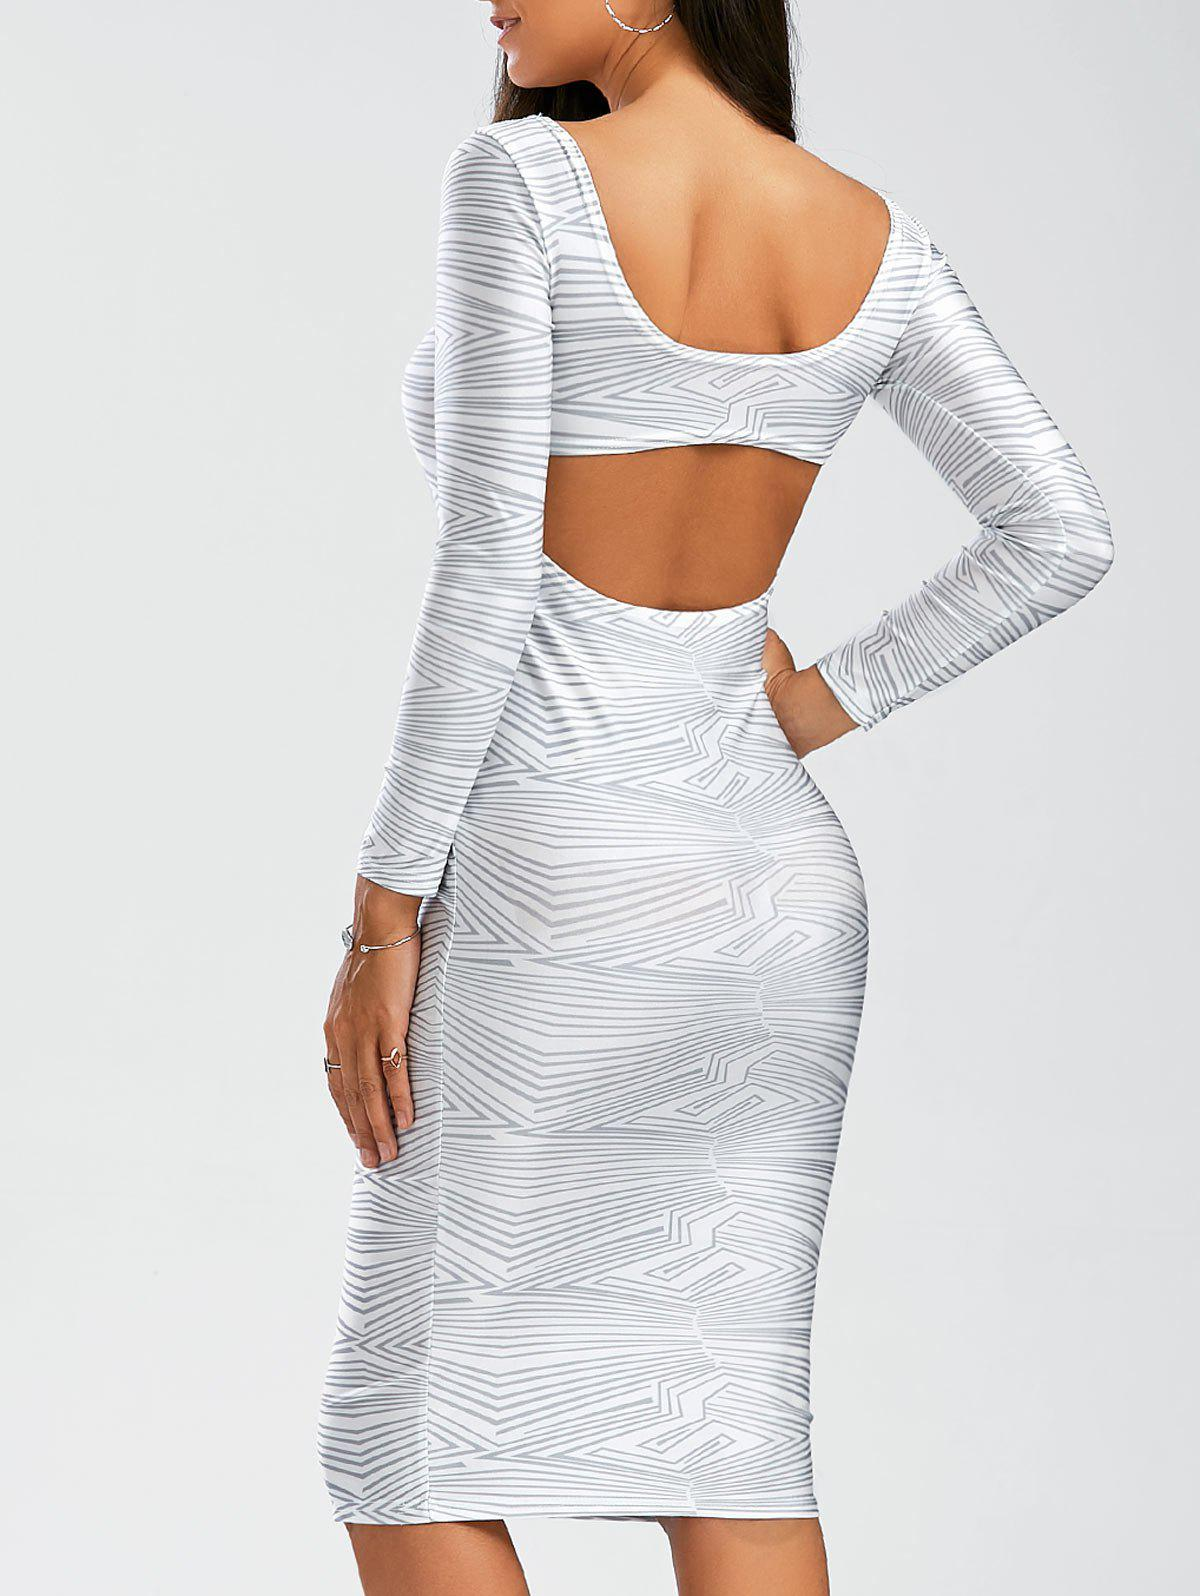 Backless Long Sleeve Sheath Tight DressWOMEN<br><br>Size: M; Color: WHITE; Style: Sexy &amp; Club; Material: Polyester; Silhouette: Sheath; Dresses Length: Knee-Length; Neckline: Scoop Neck; Sleeve Length: Long Sleeves; Pattern Type: Print; With Belt: No; Season: Fall,Spring; Weight: 0.245kg; Package Contents: 1 x Dress;